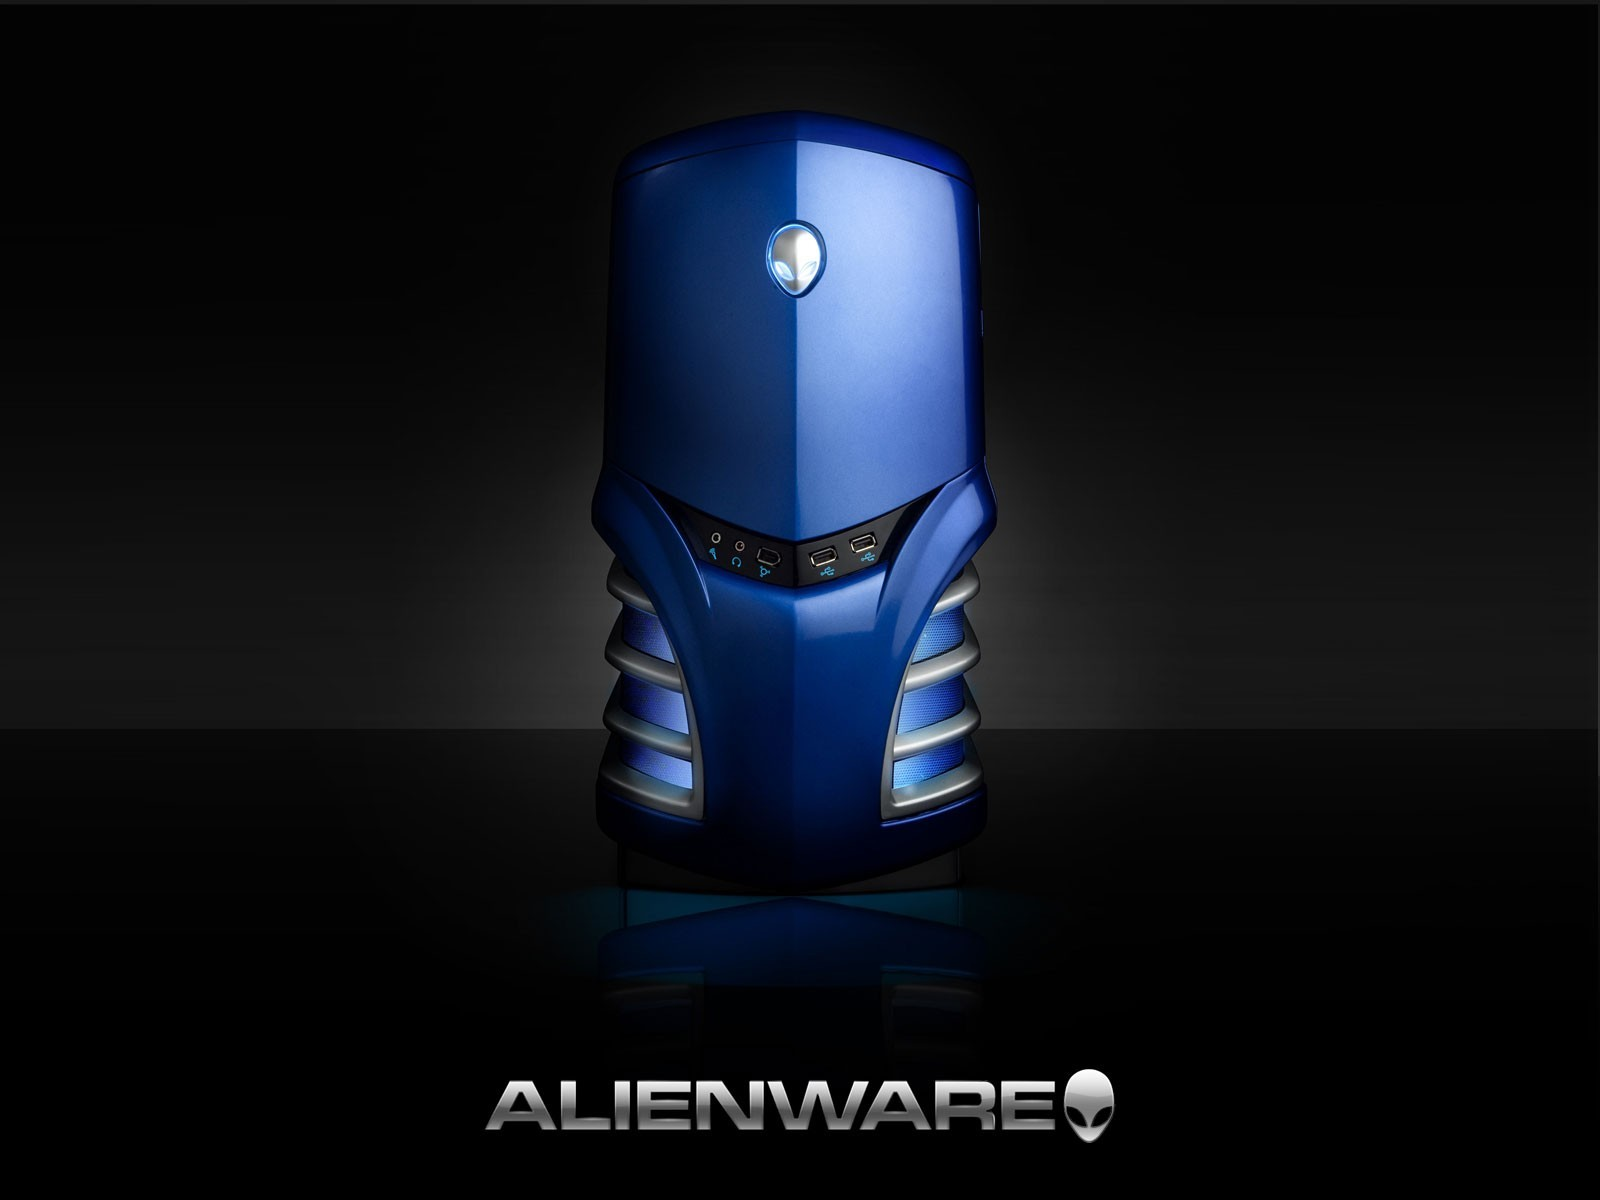 HD Alienware Wallpapers 19201080 Alienware Backgrounds for Laptops 1600x1200